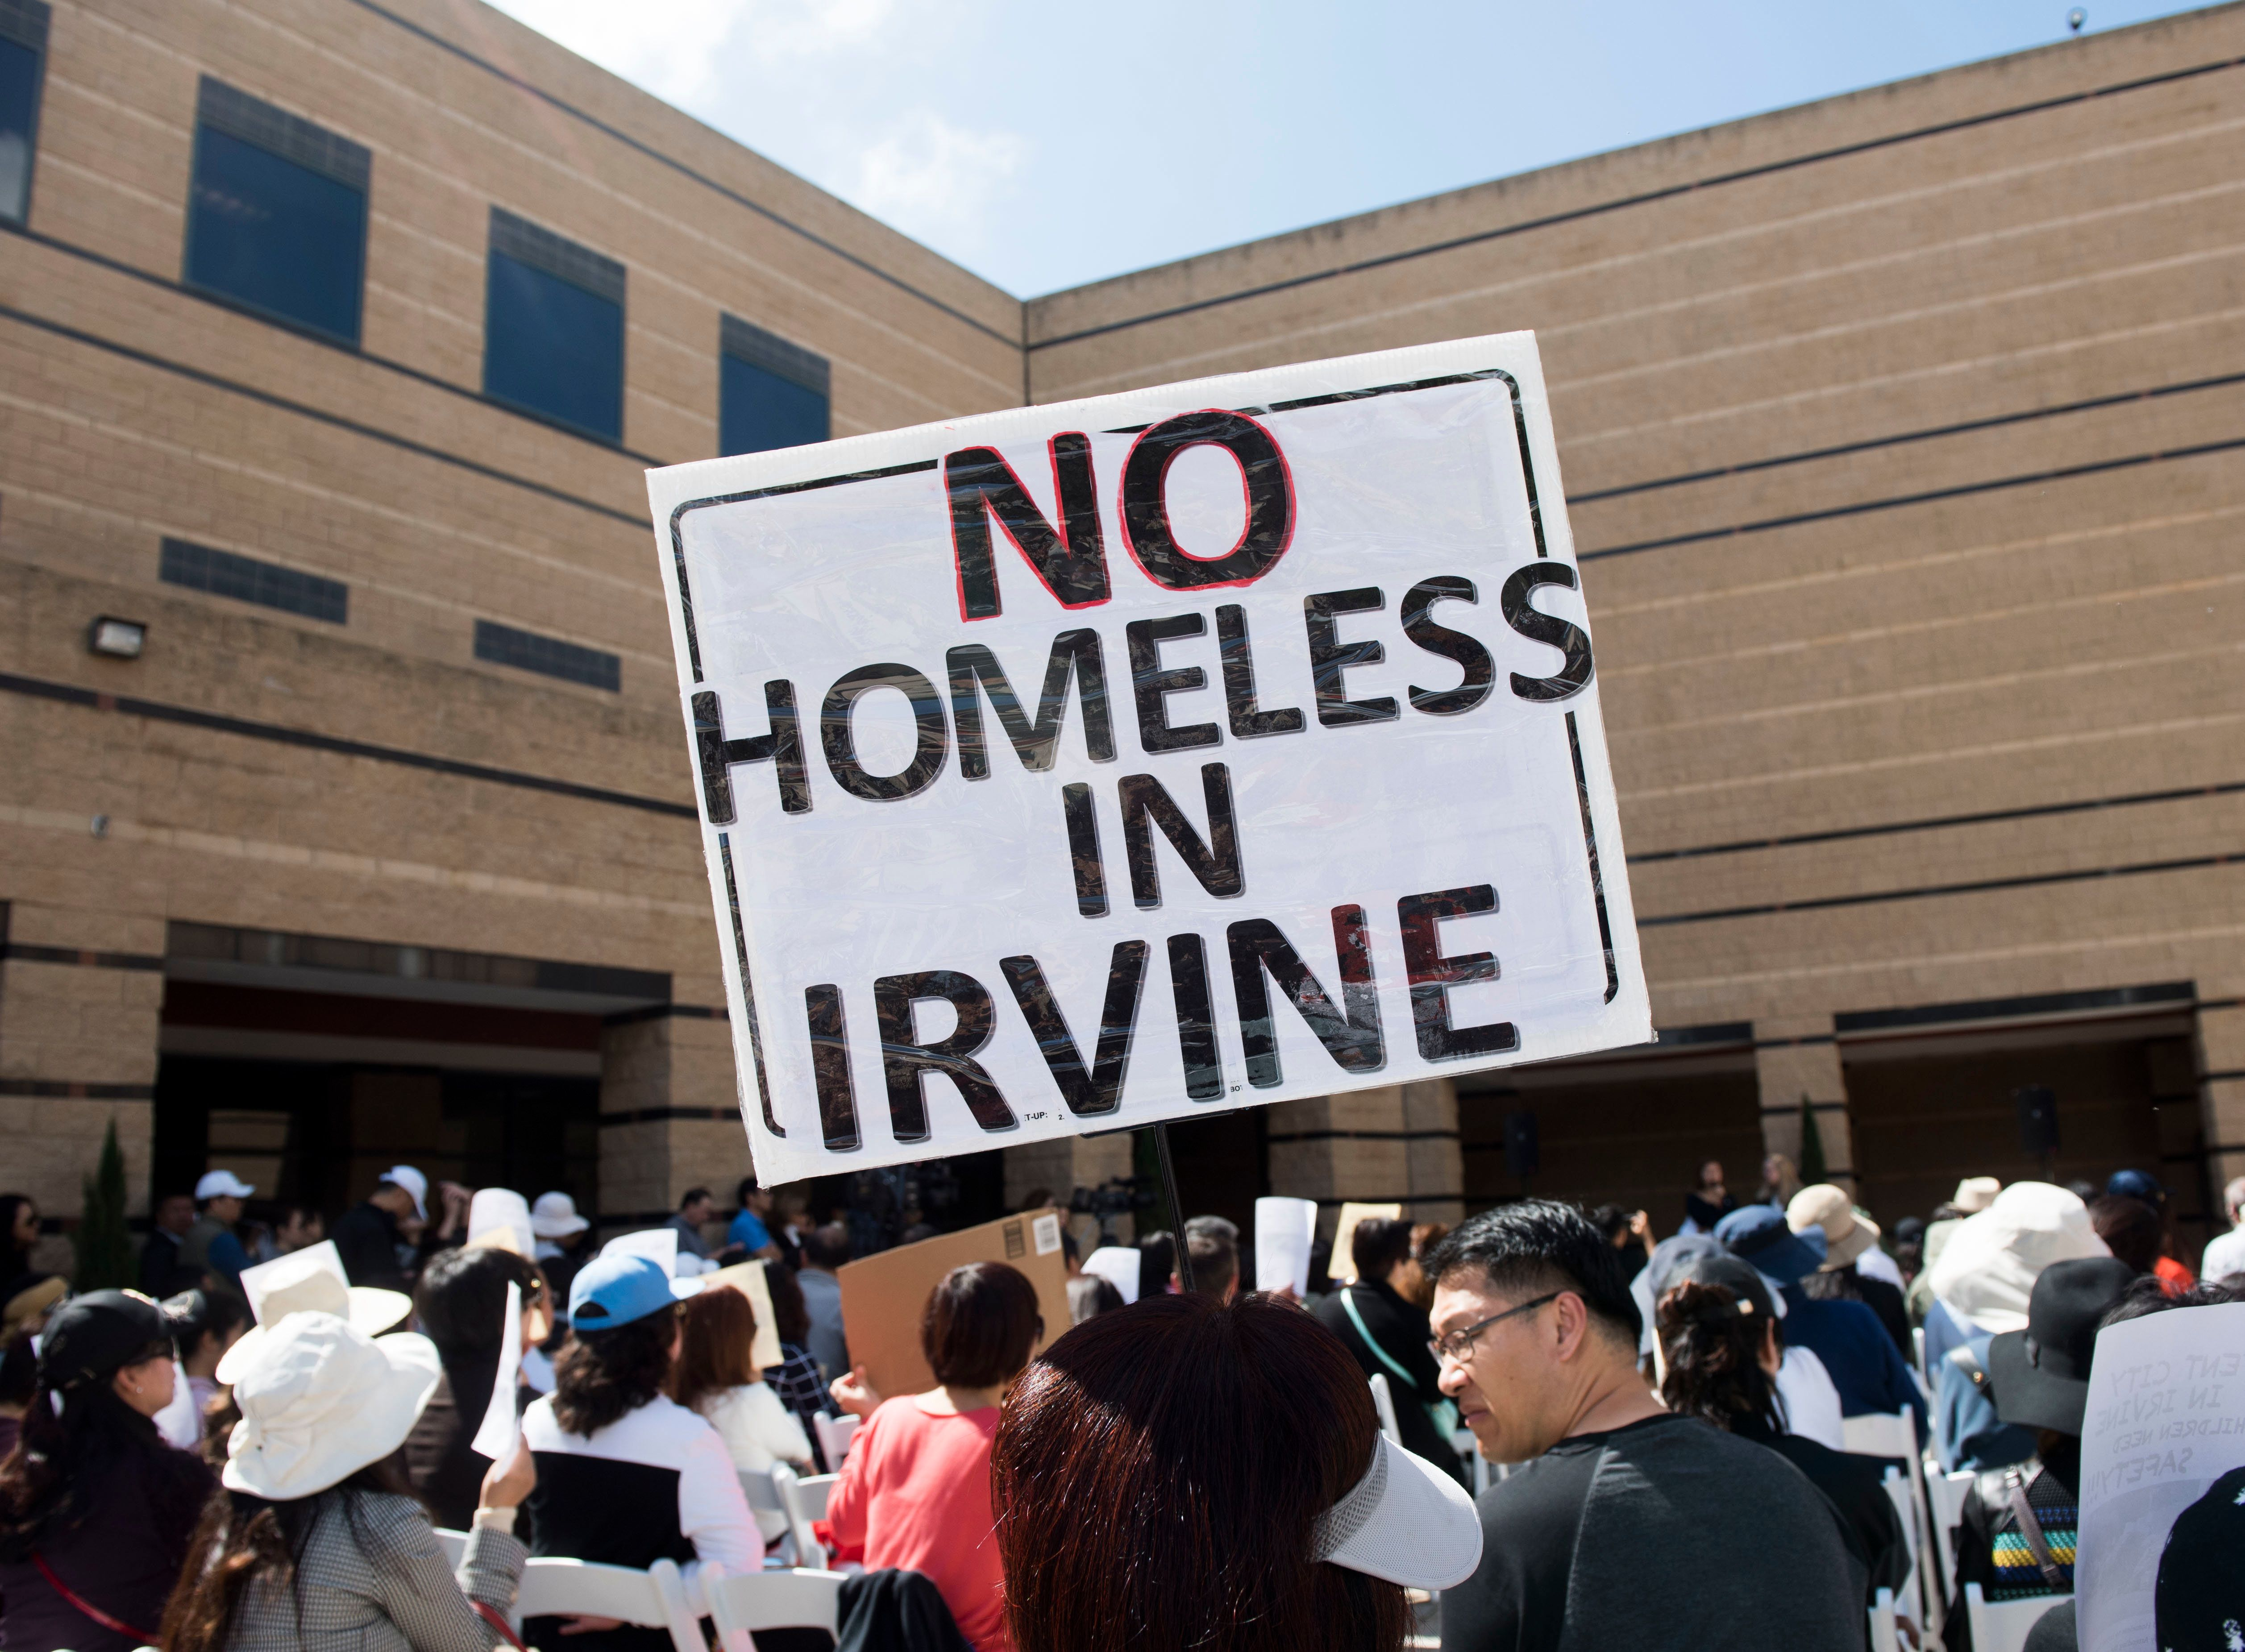 Irvine residents protested in March in response to the county's plan to build a homeless shelter in the city. The county later reversed the decision.